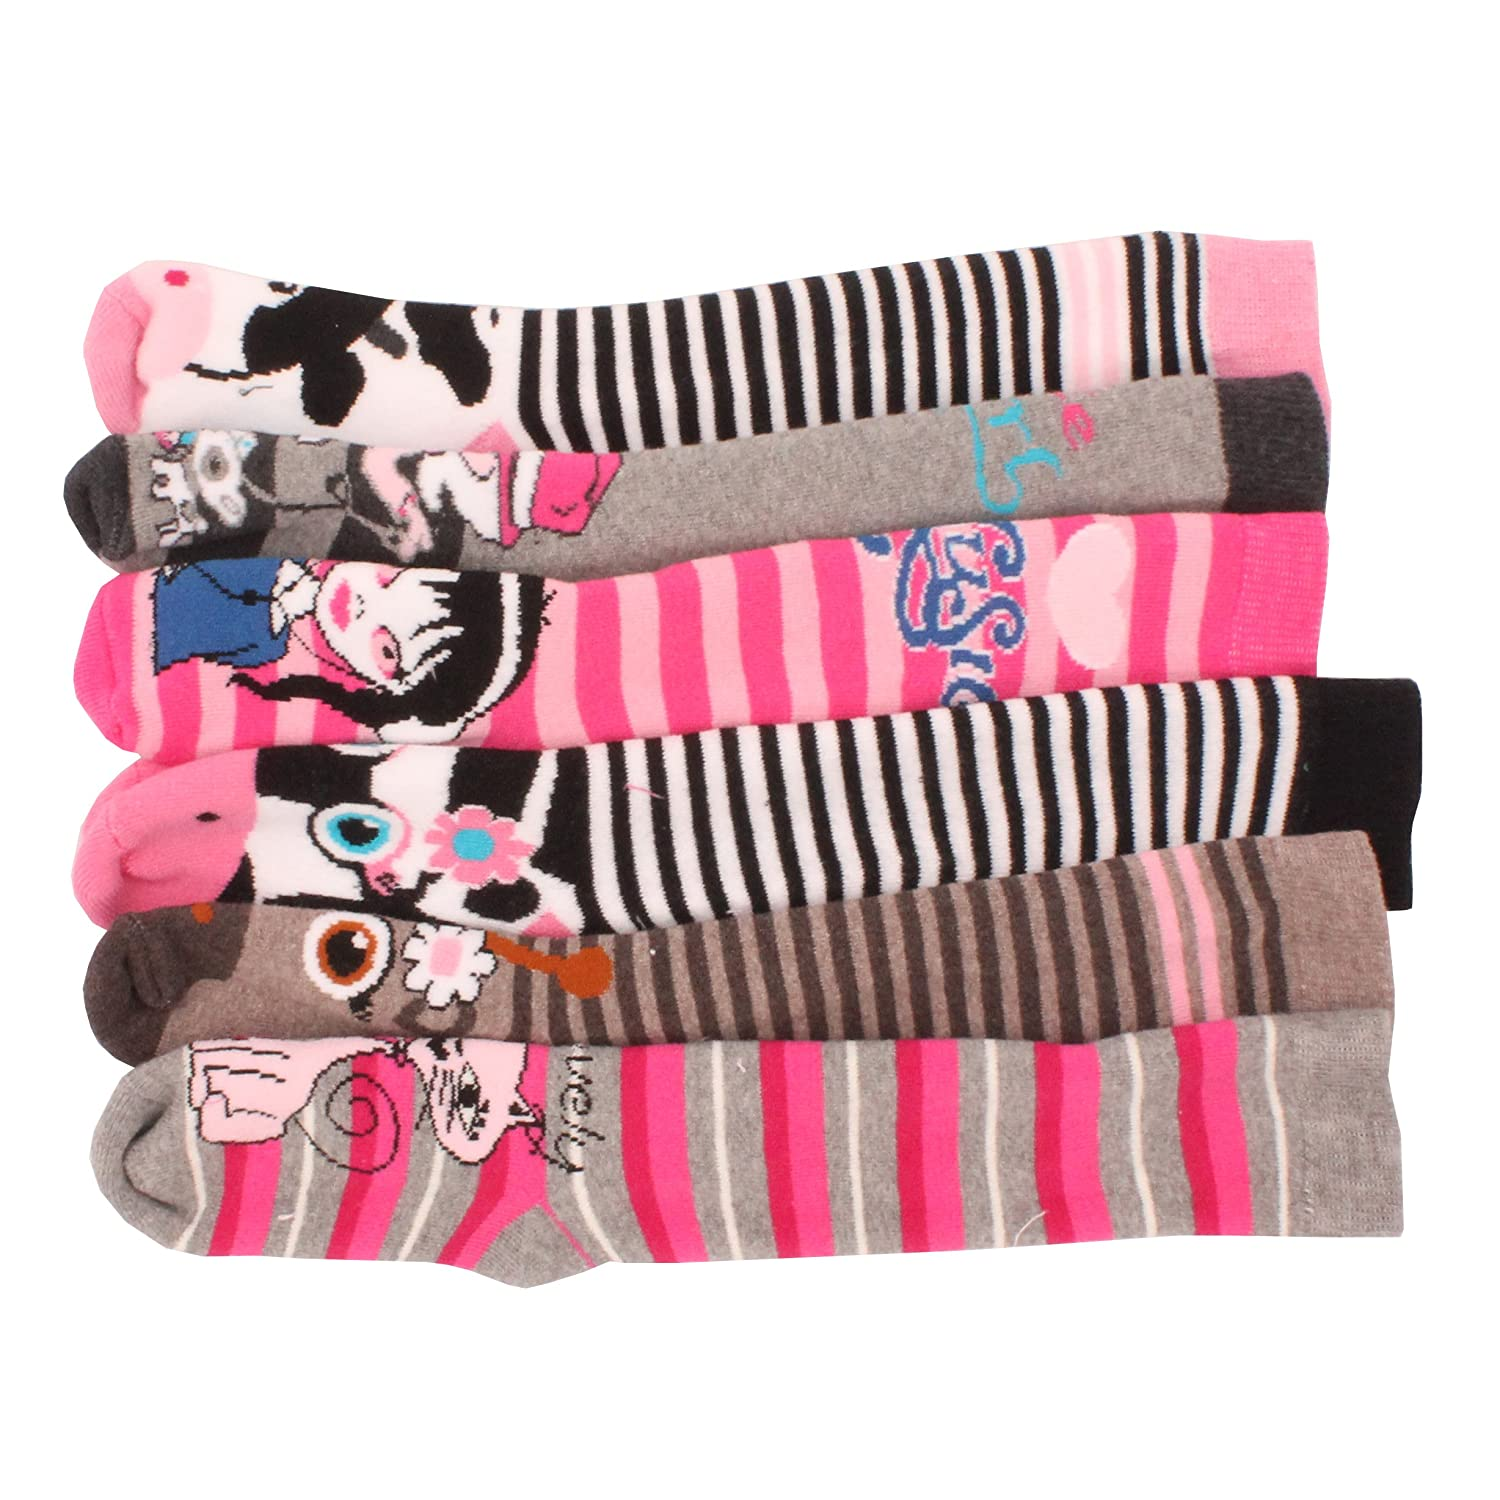 6 x Girls Kids Children Wellington Welly Animal Print Thermal Warm Long Socks Britwear